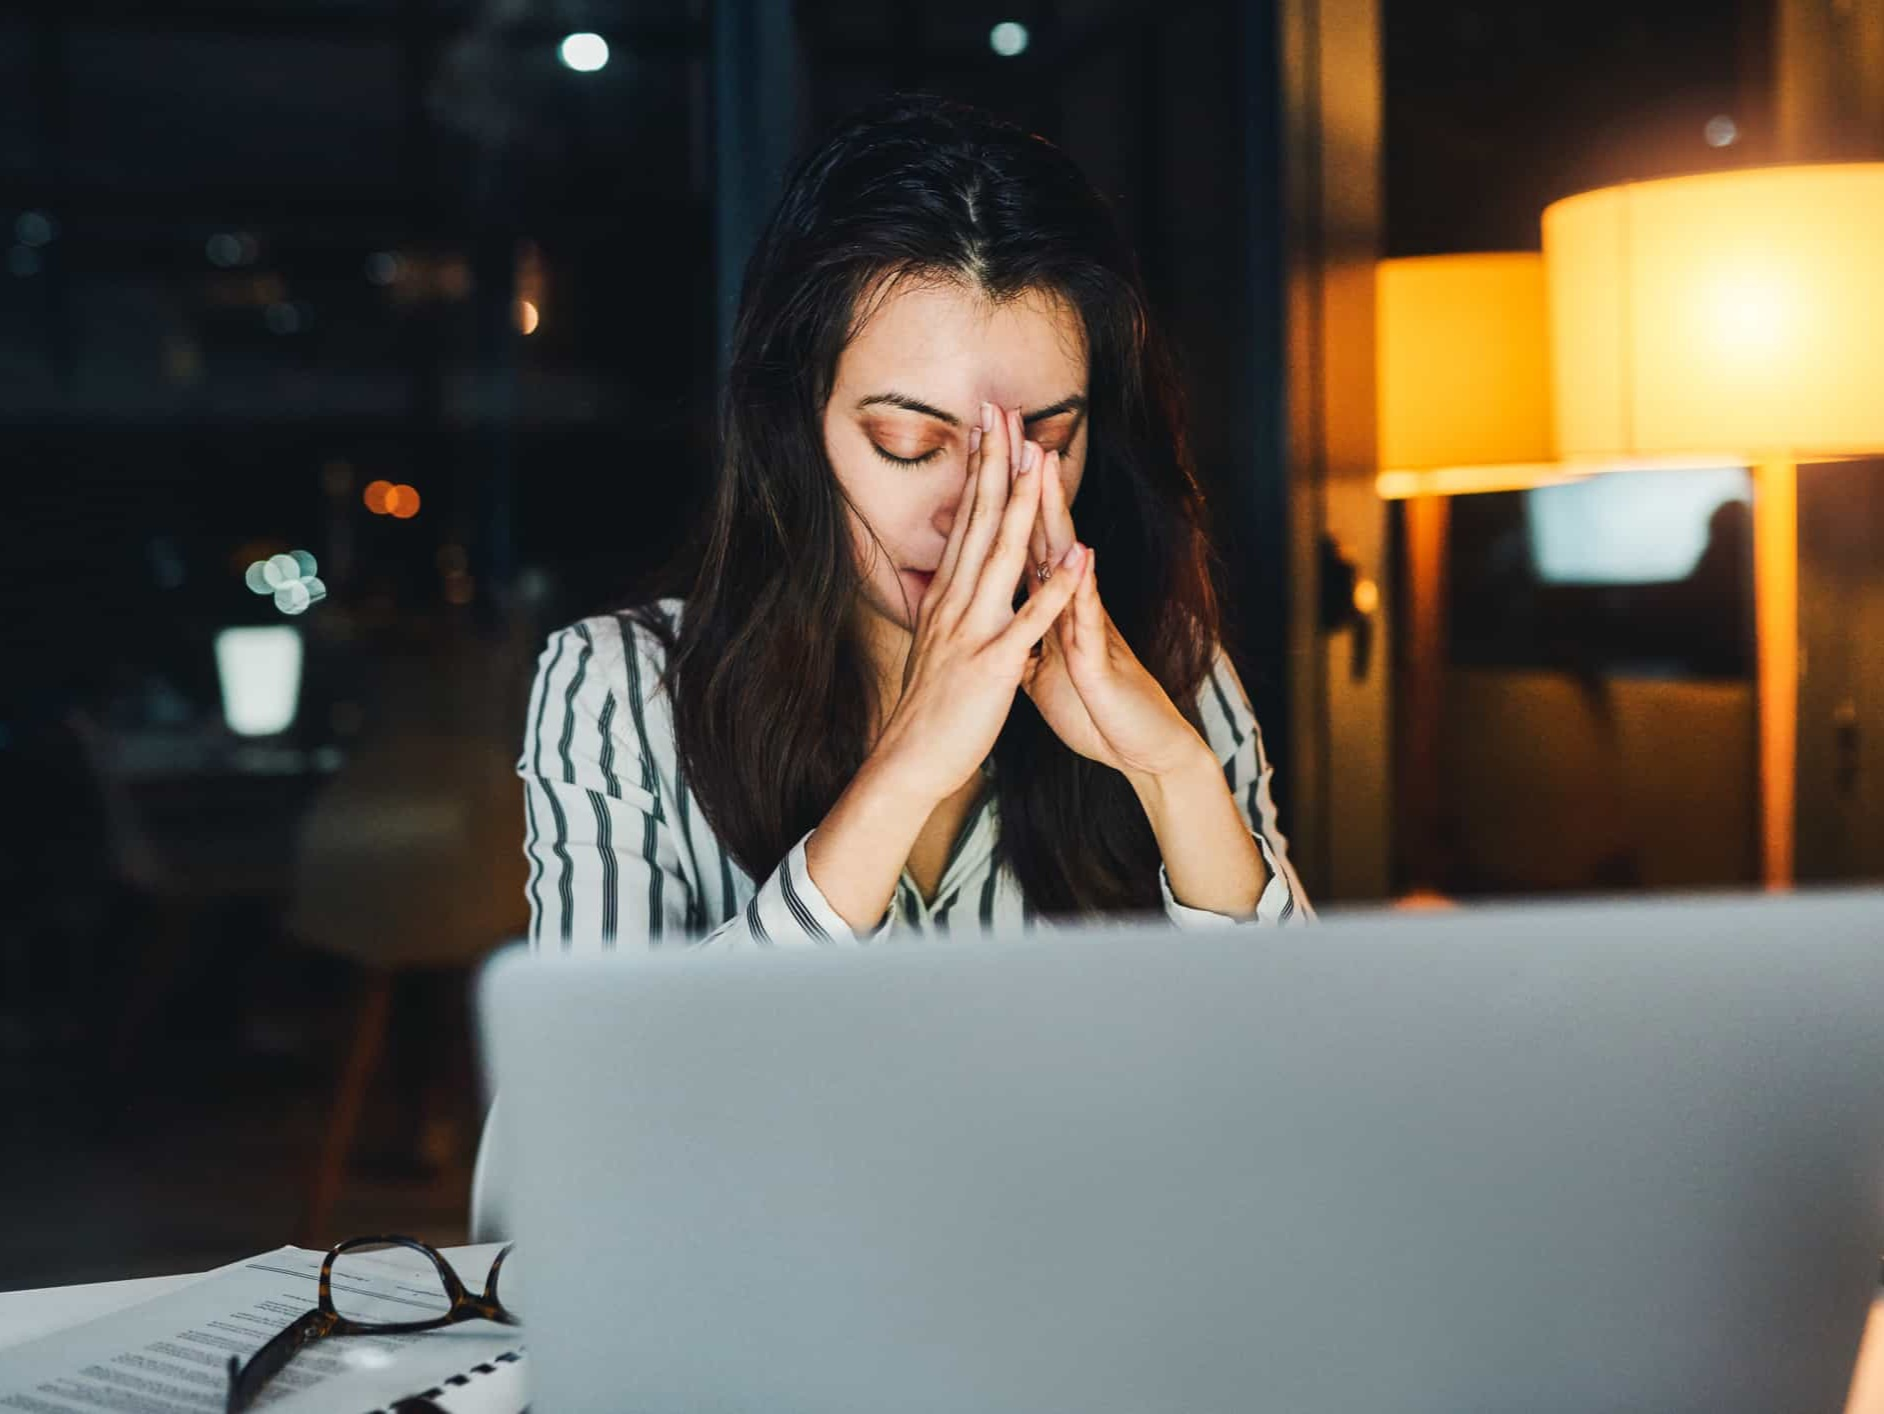 female employee, experiencing burnout